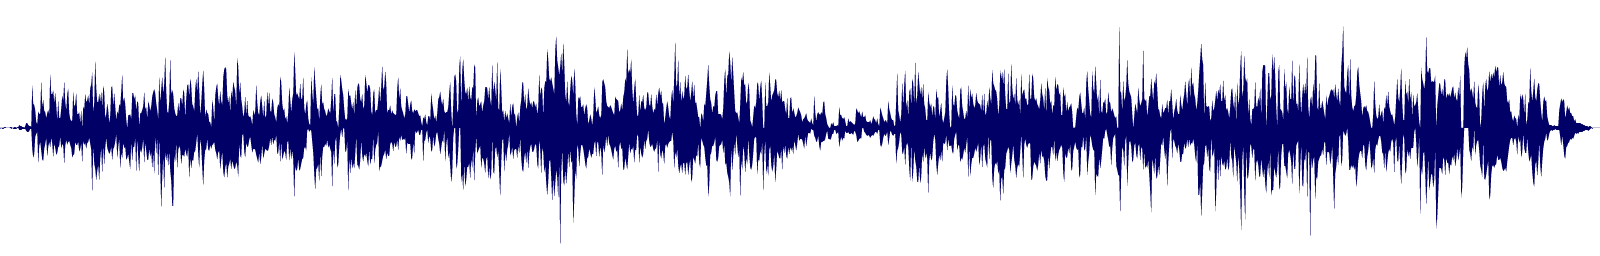 waveform of track #154098